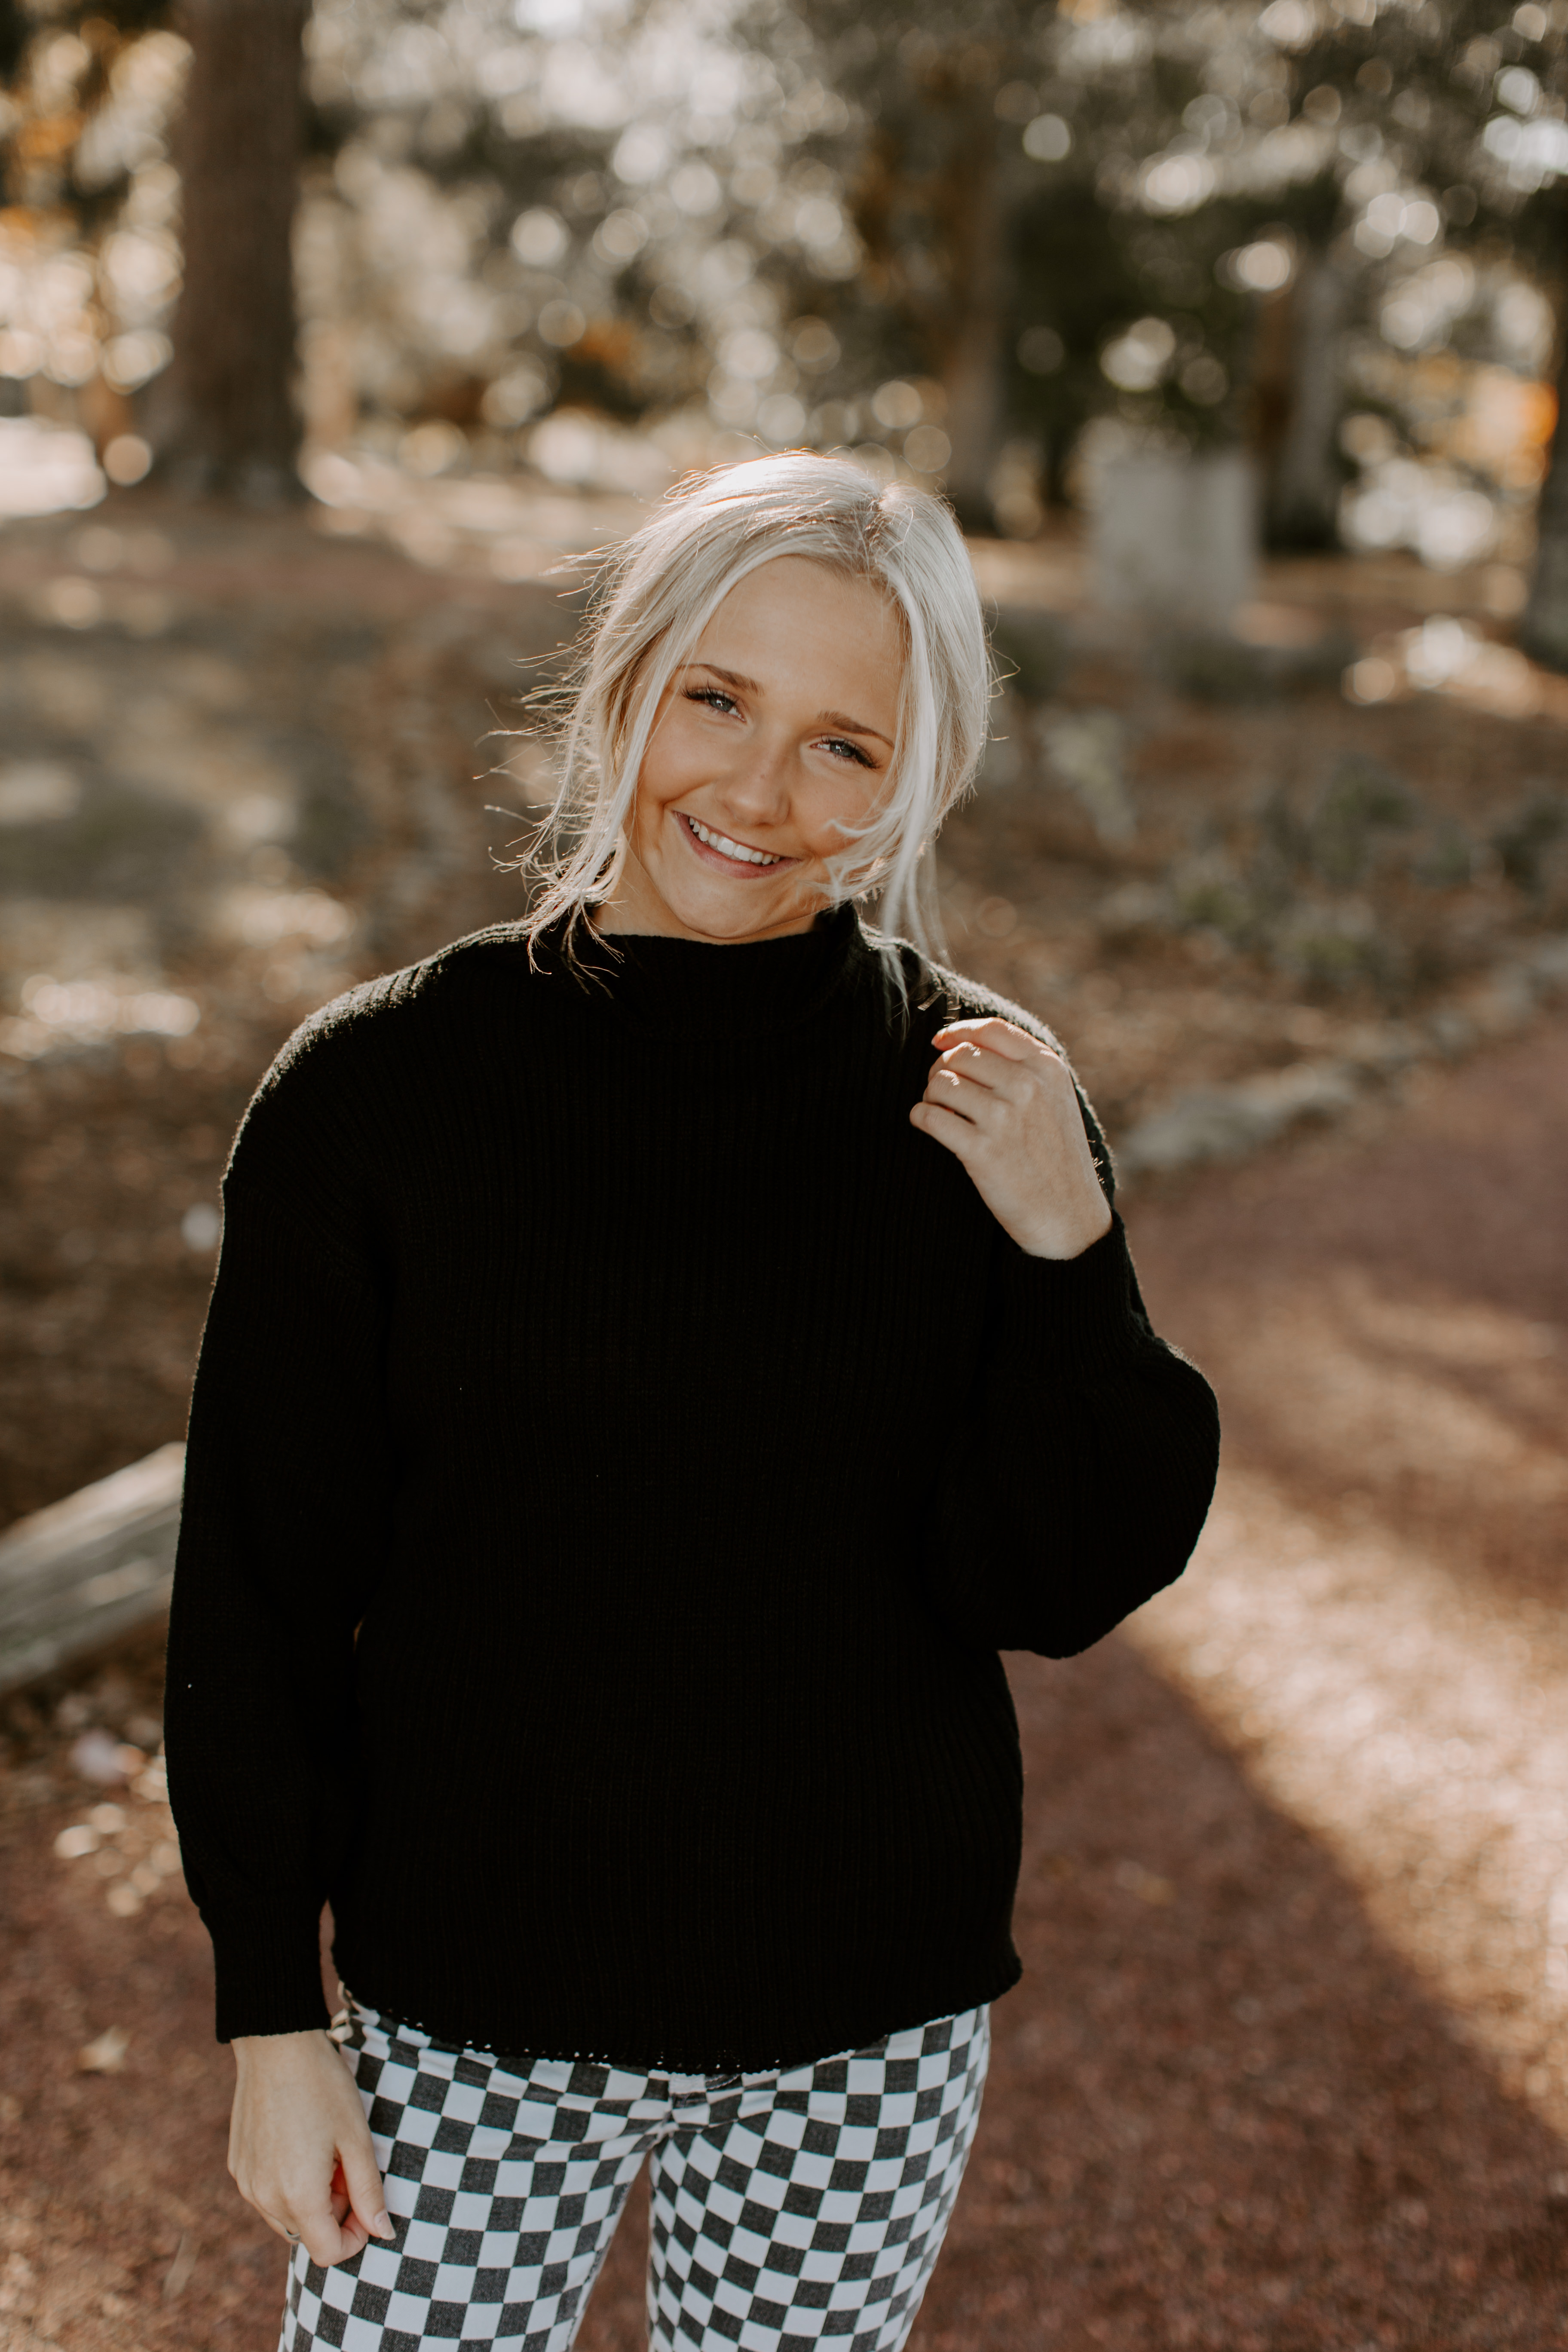 Ashley W. free people senior pictures black sweater checkered pants lifestyle city candid model pose wedding elopement blonde hair outfit overall white preset